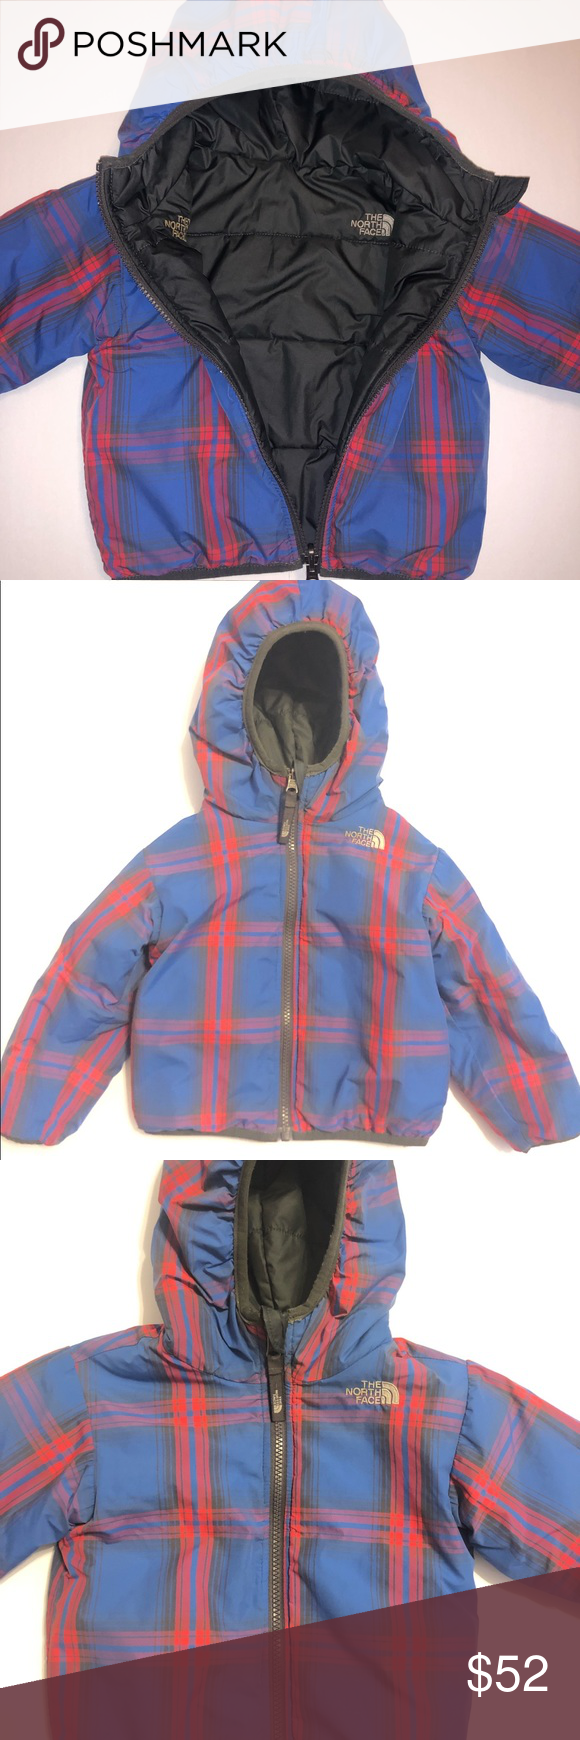 Reversible North Face Plaid And Gray Puffer Jacket Grey Puffer Jacket Jackets Puffer Jackets [ 1740 x 580 Pixel ]